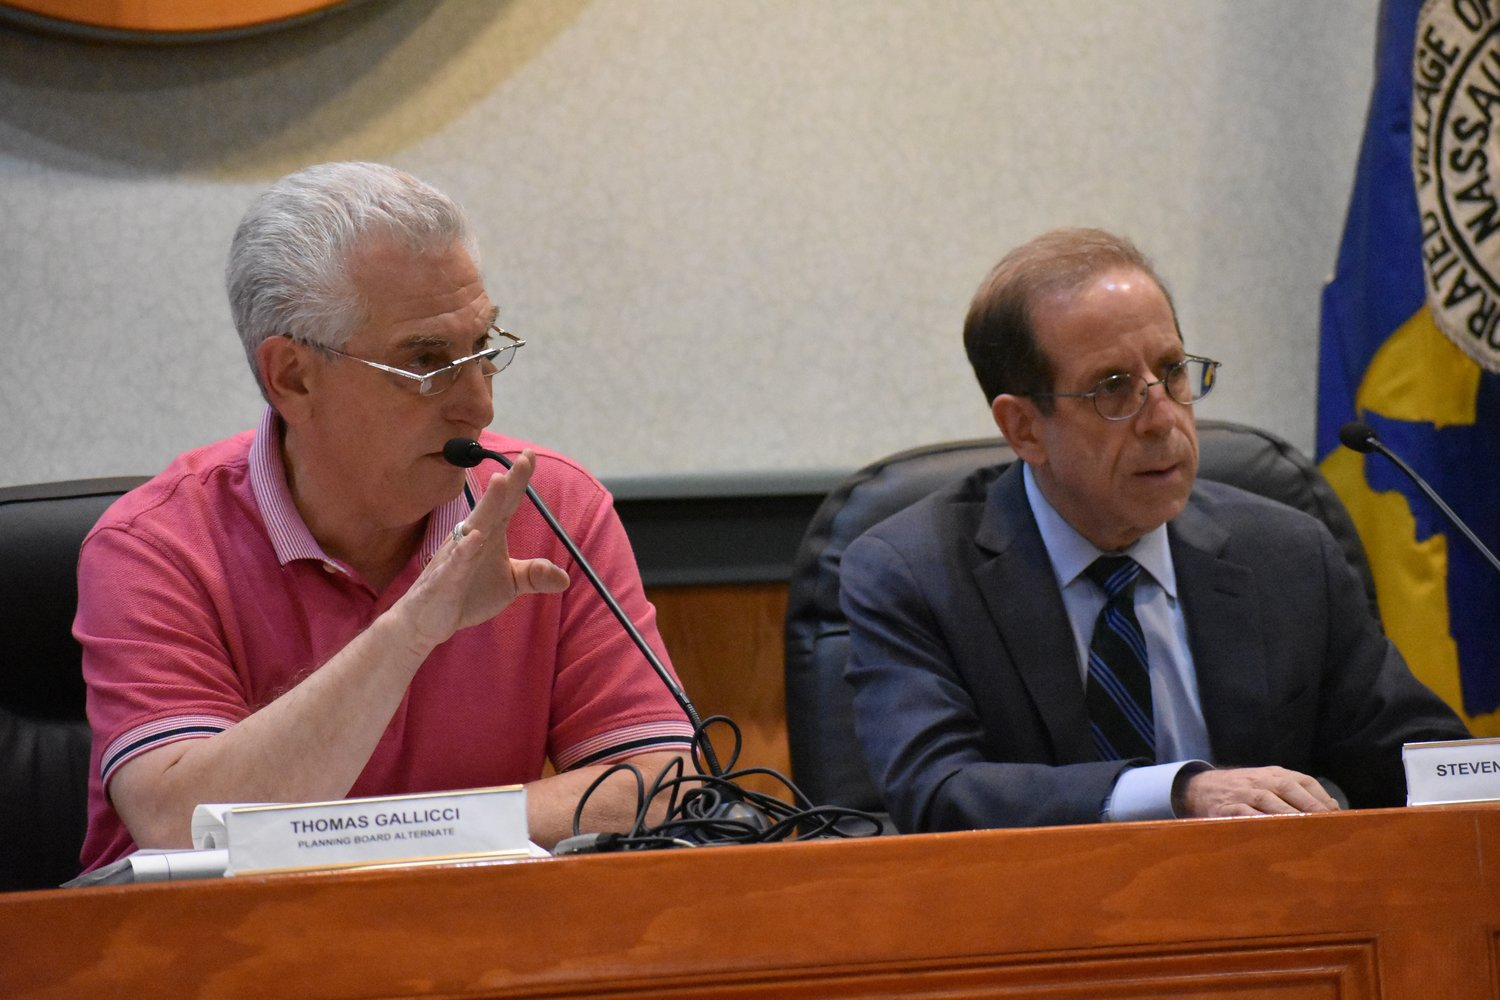 Thomas Gallucci, the Planning Board's acting chairman, left, alongside attorney Steven Leventhal, responded to a resident during a meeting on June 19.